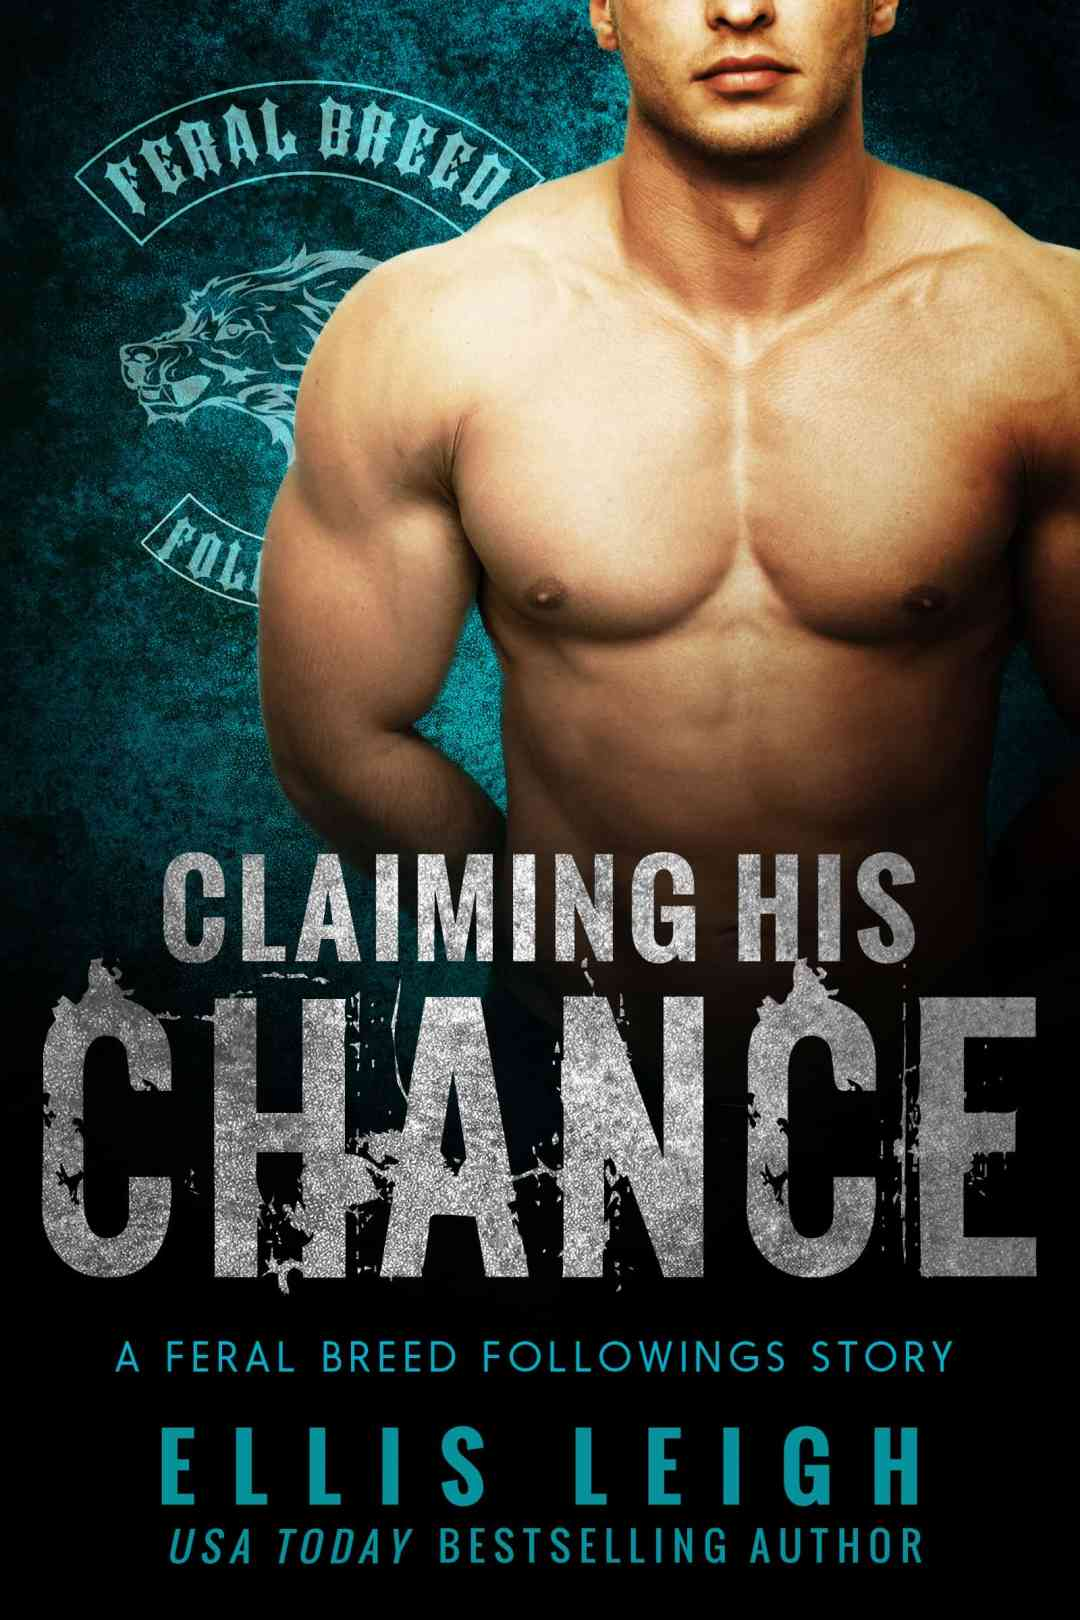 Claiming His Chance